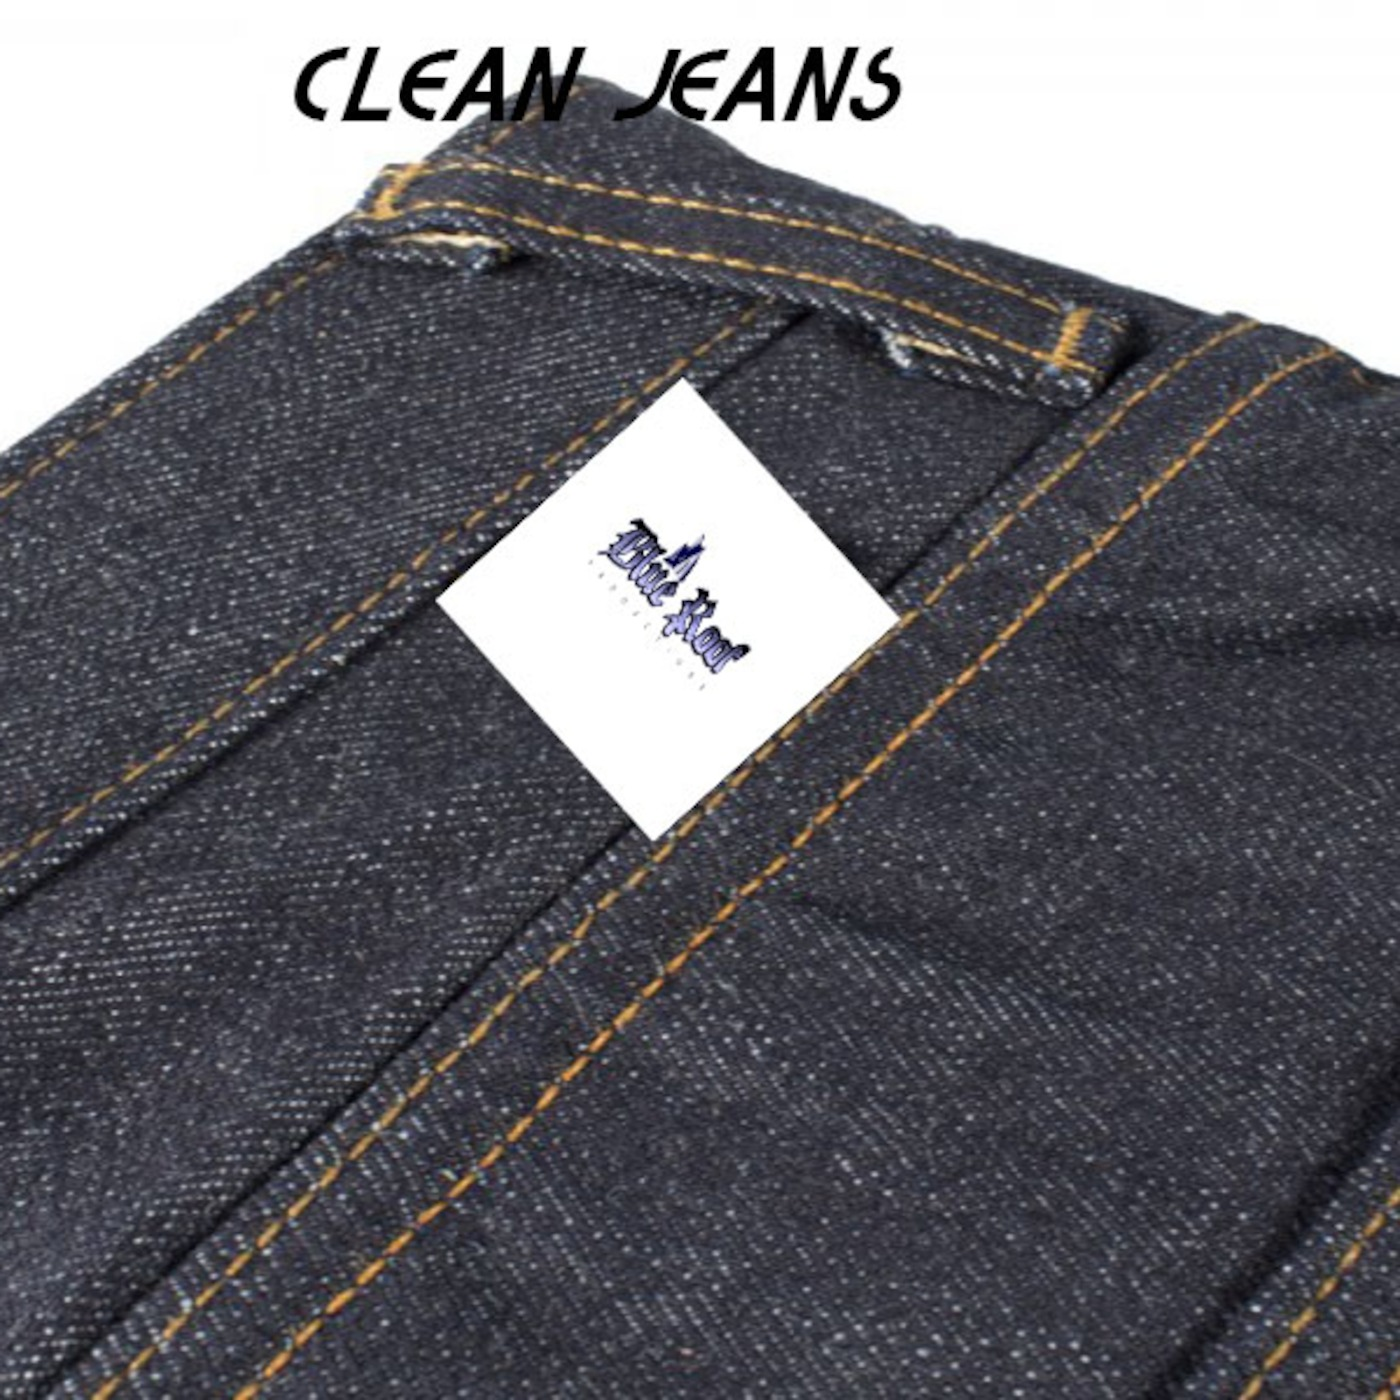 Clean Jeans